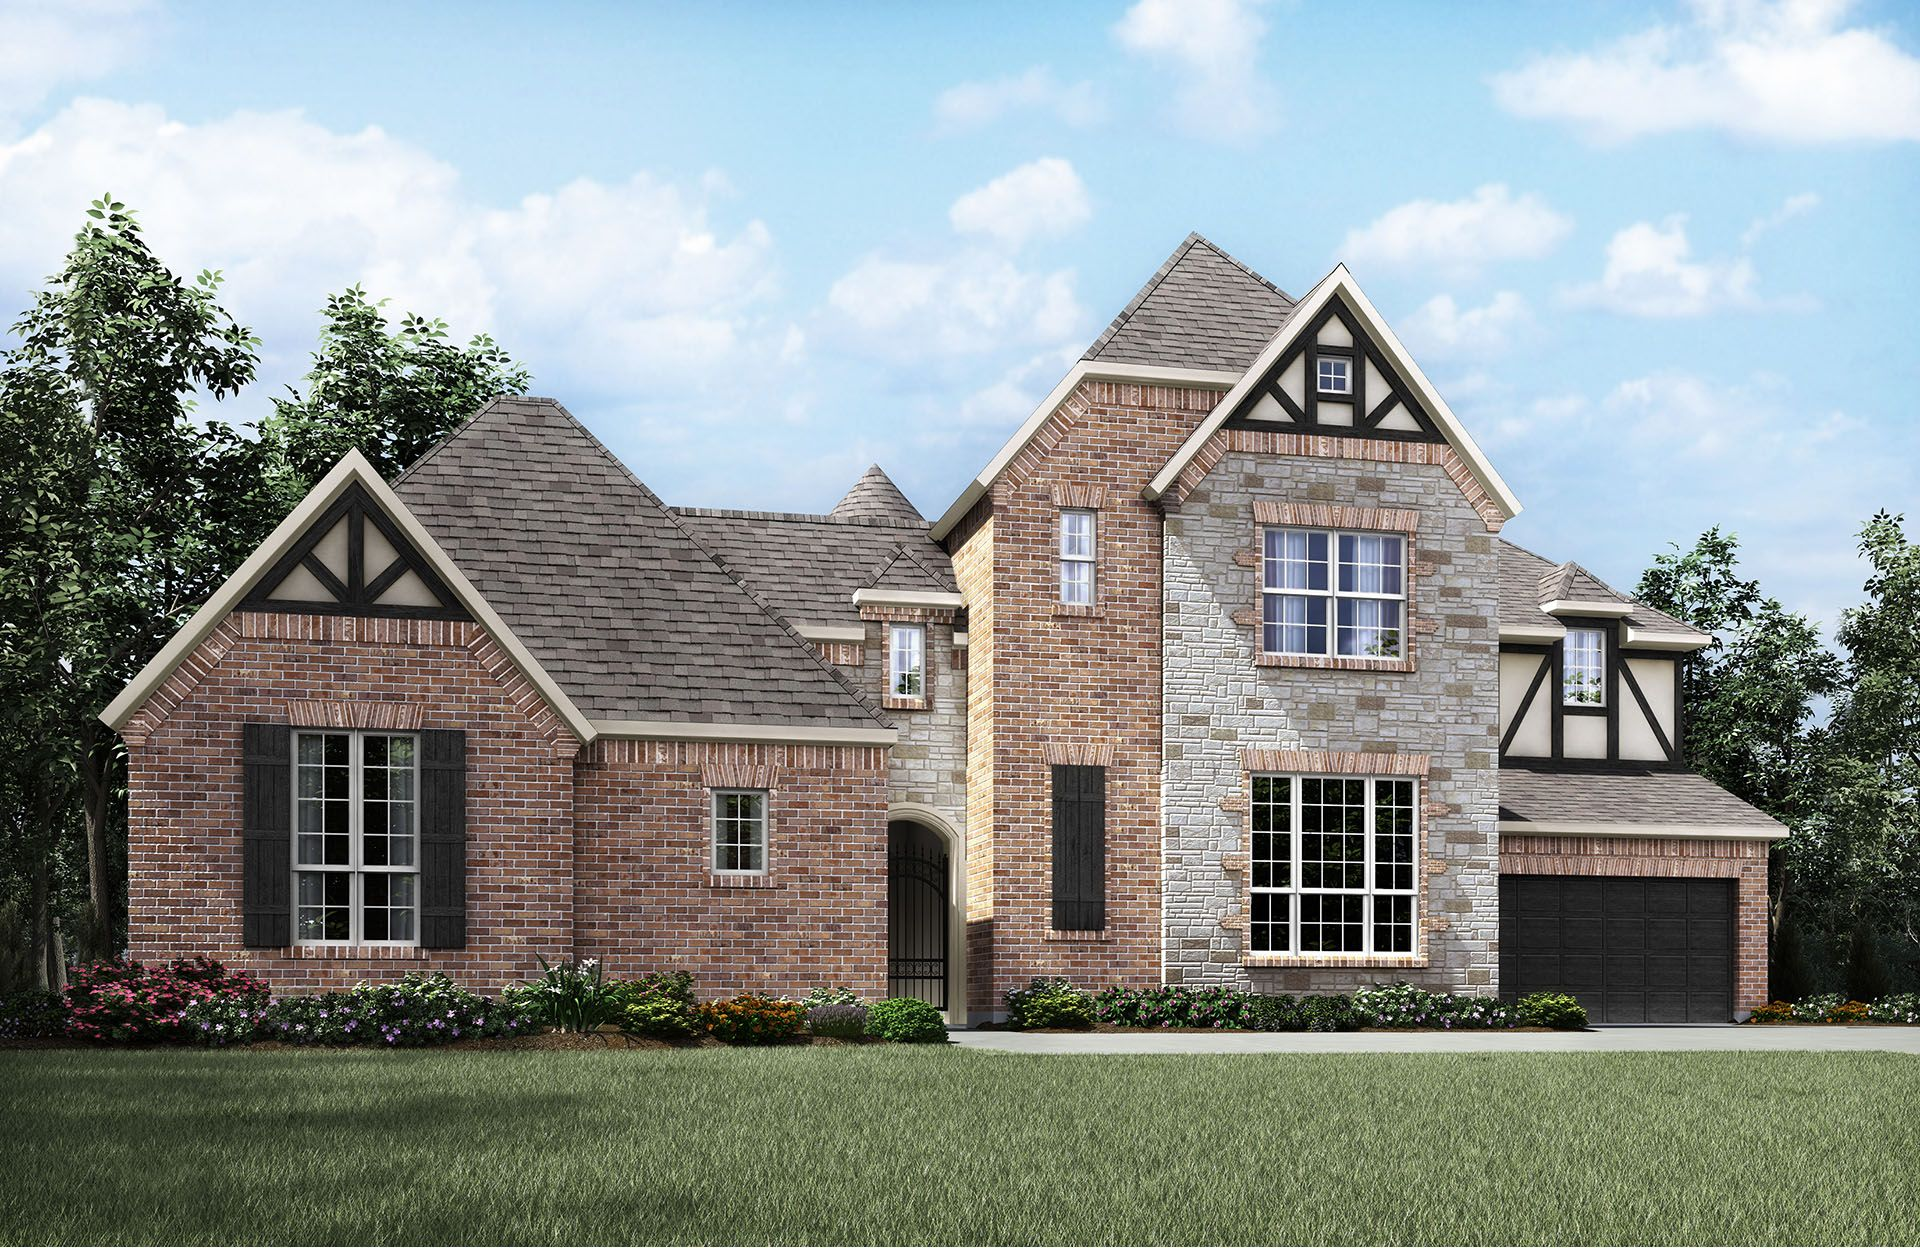 Unifamiliar por un Venta en Woodtrace - Ensenada Ii 33823 Mill Creek Way Pinehurst, Texas 77362 United States